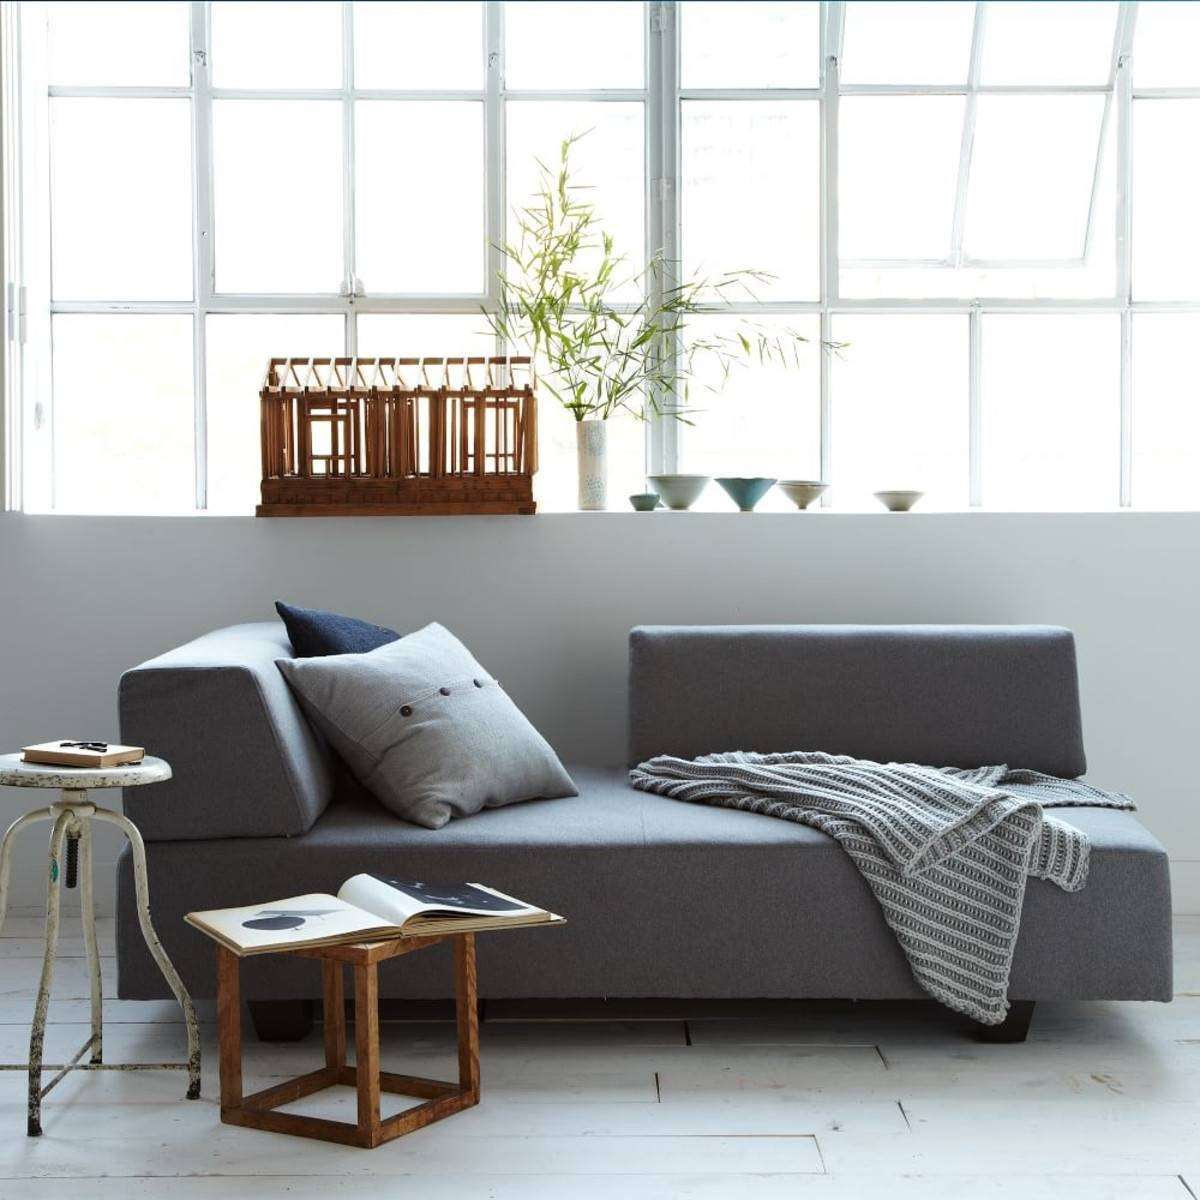 Furniture: Henry Sectional West Elm Reviews | West Elm Furniture intended for West Elm Sectional Sofa (Image 8 of 30)